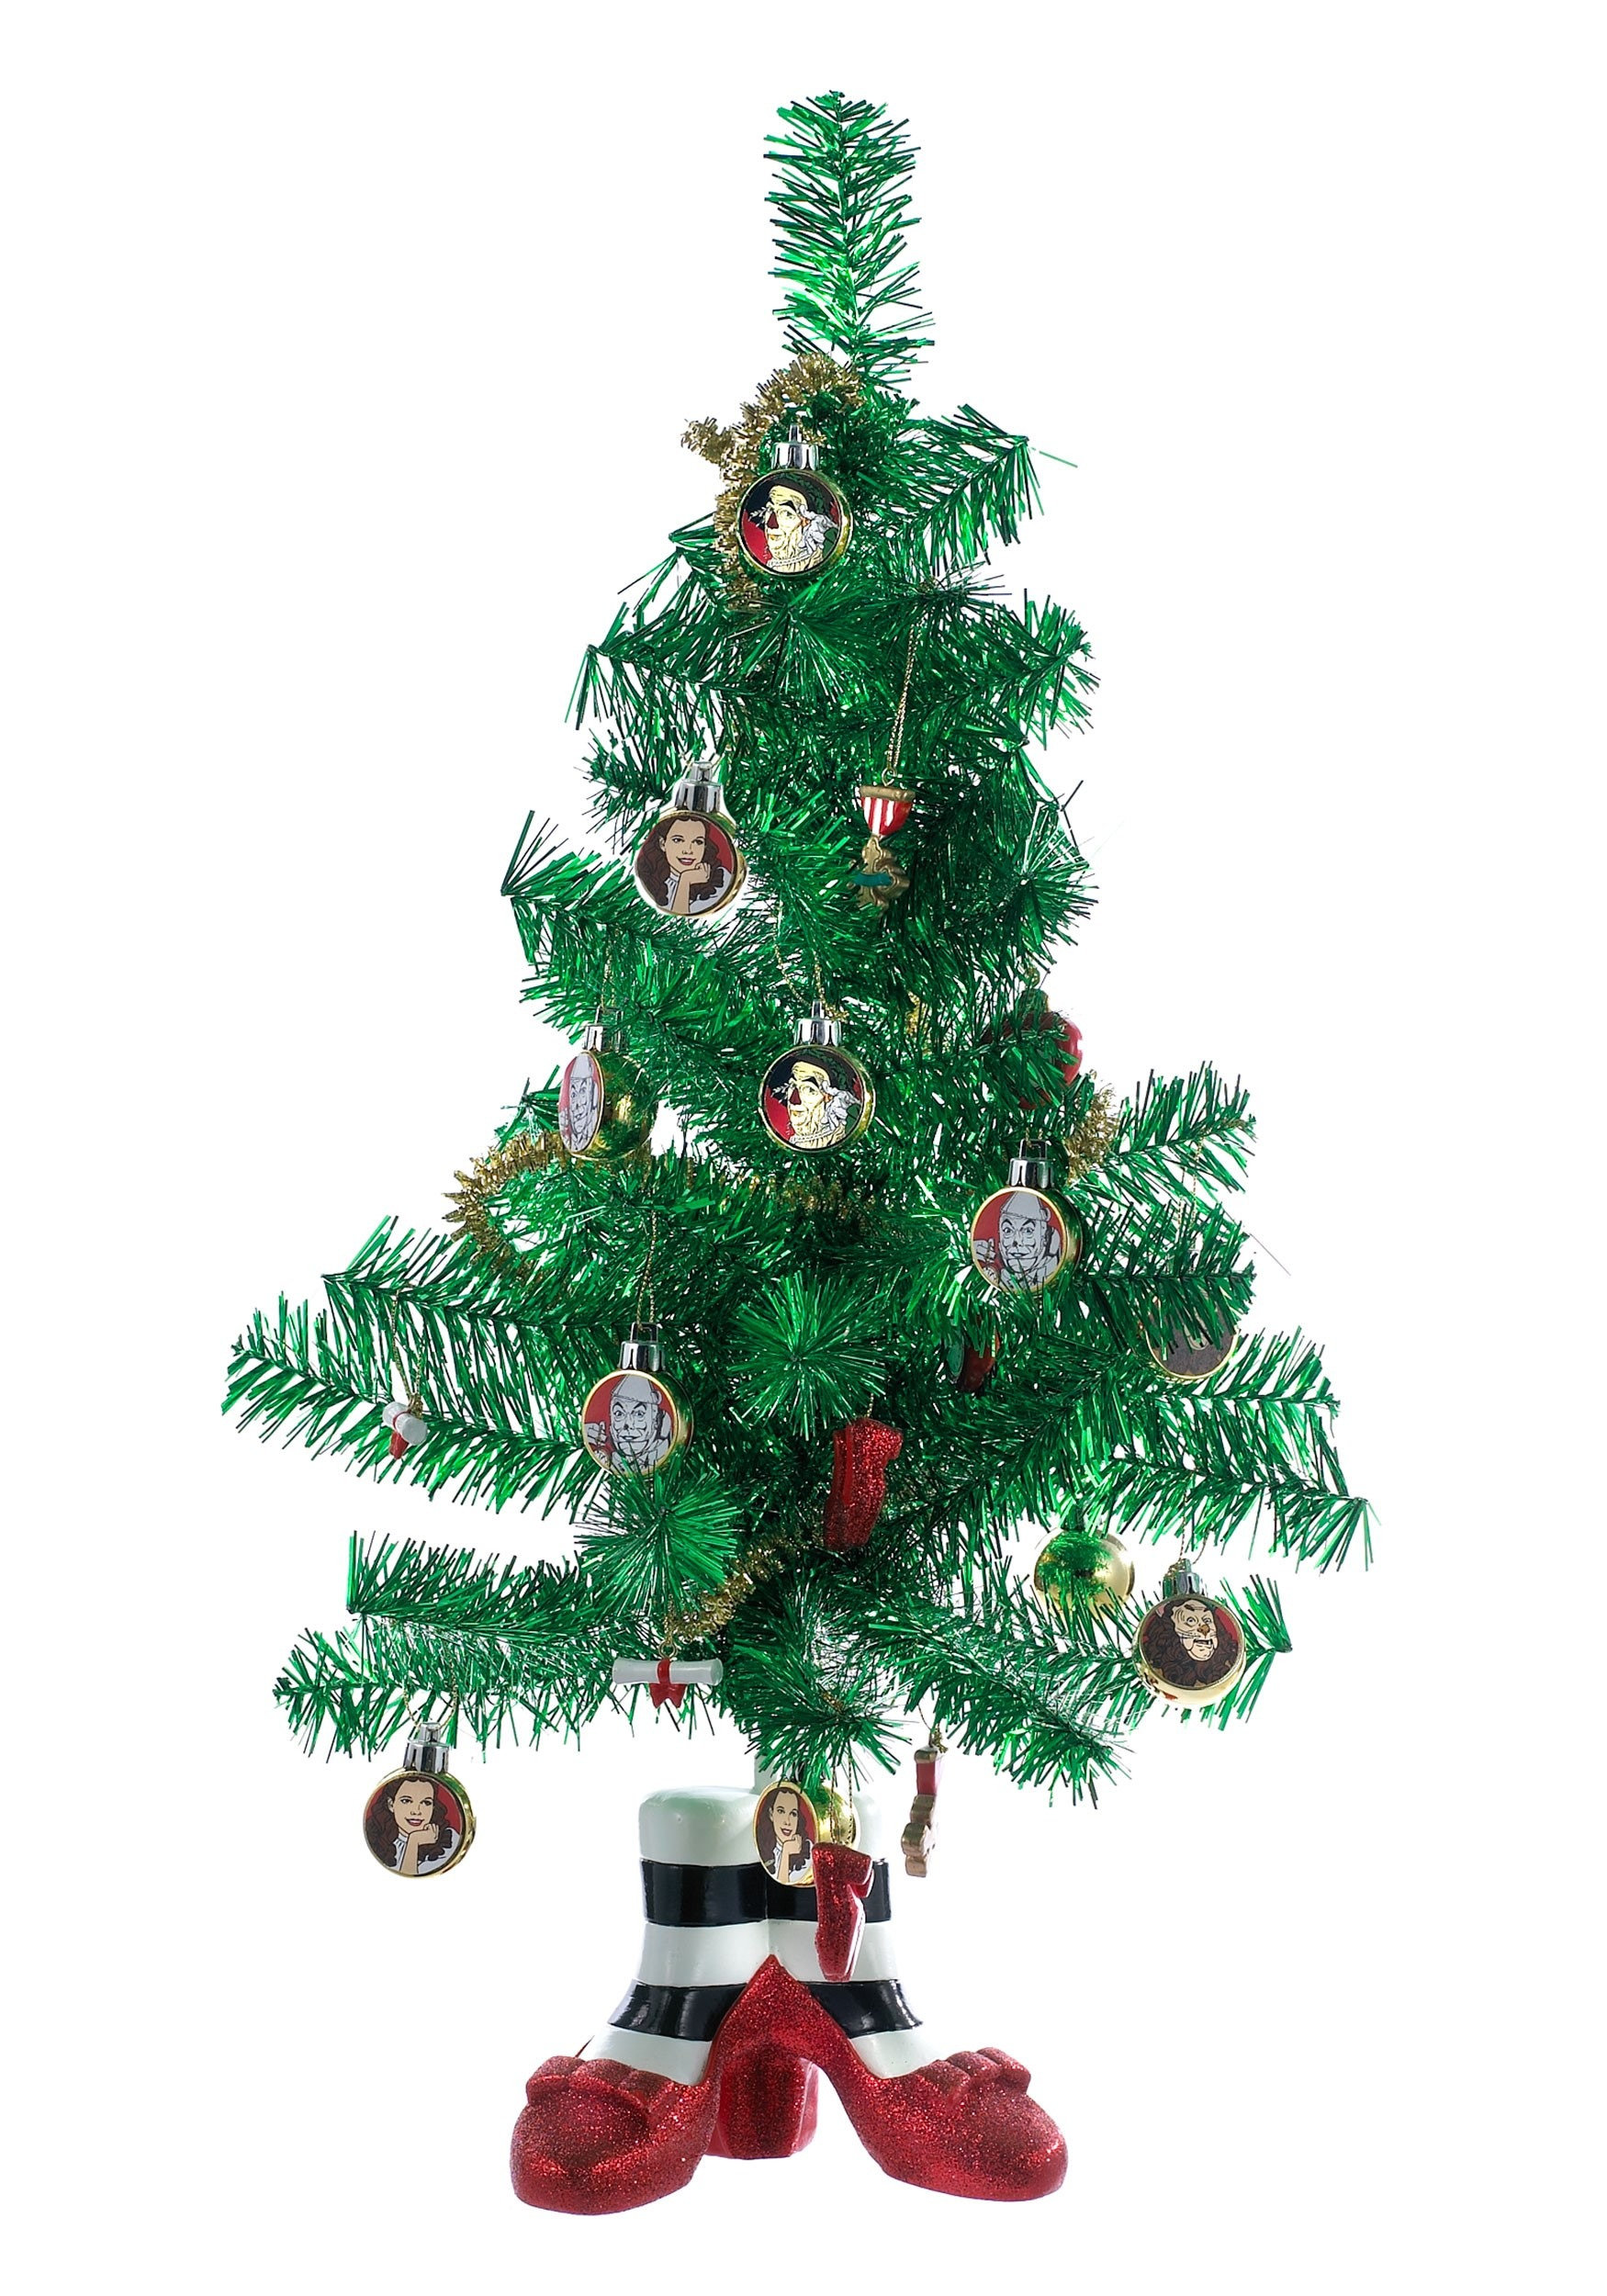 Tinsel Christmas Tree.Wizard Of Oz Miniature Tinsel Christmas Tree